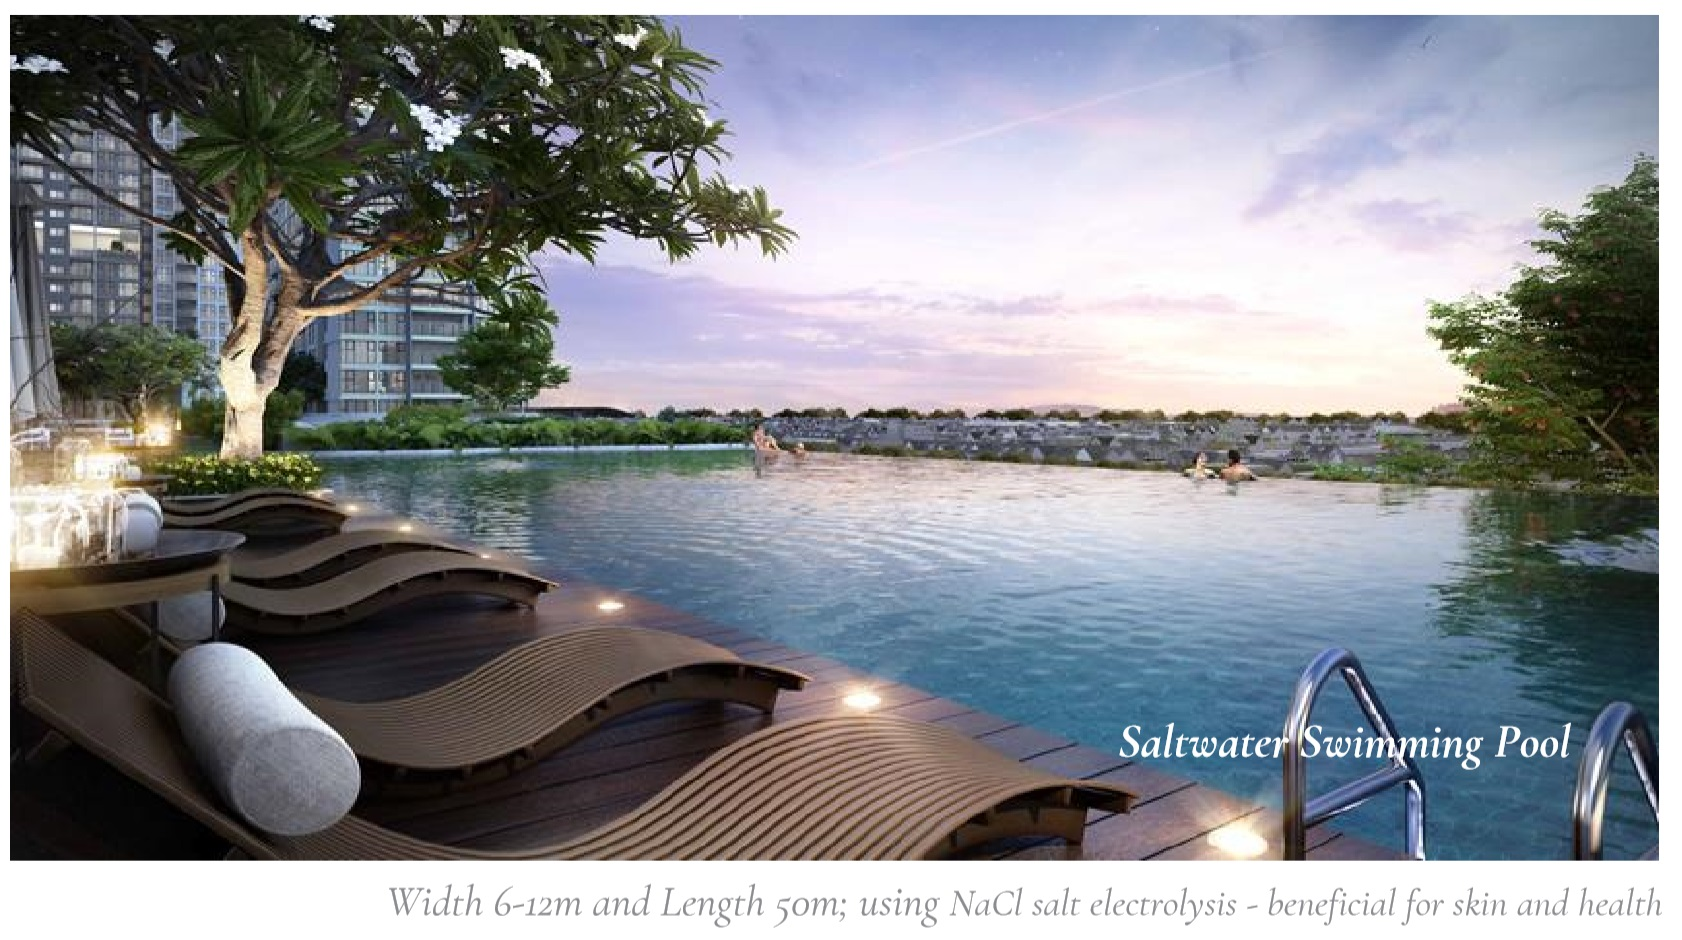 saltwater-swimming-pool